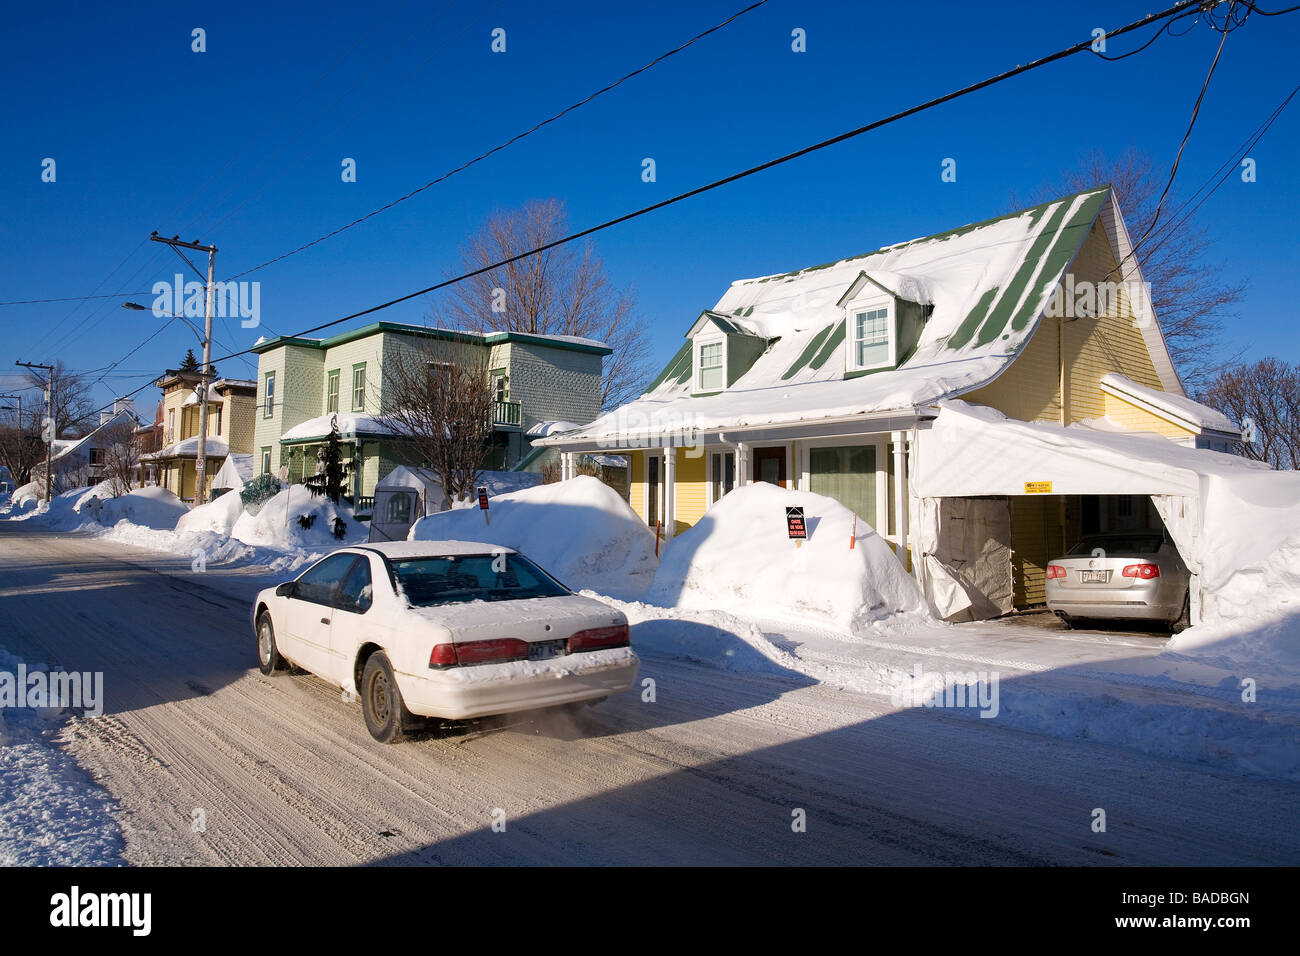 Canada, Quebec Province, Quebec City, Saint Romuald, snow covered houses and roofs Stock Photo